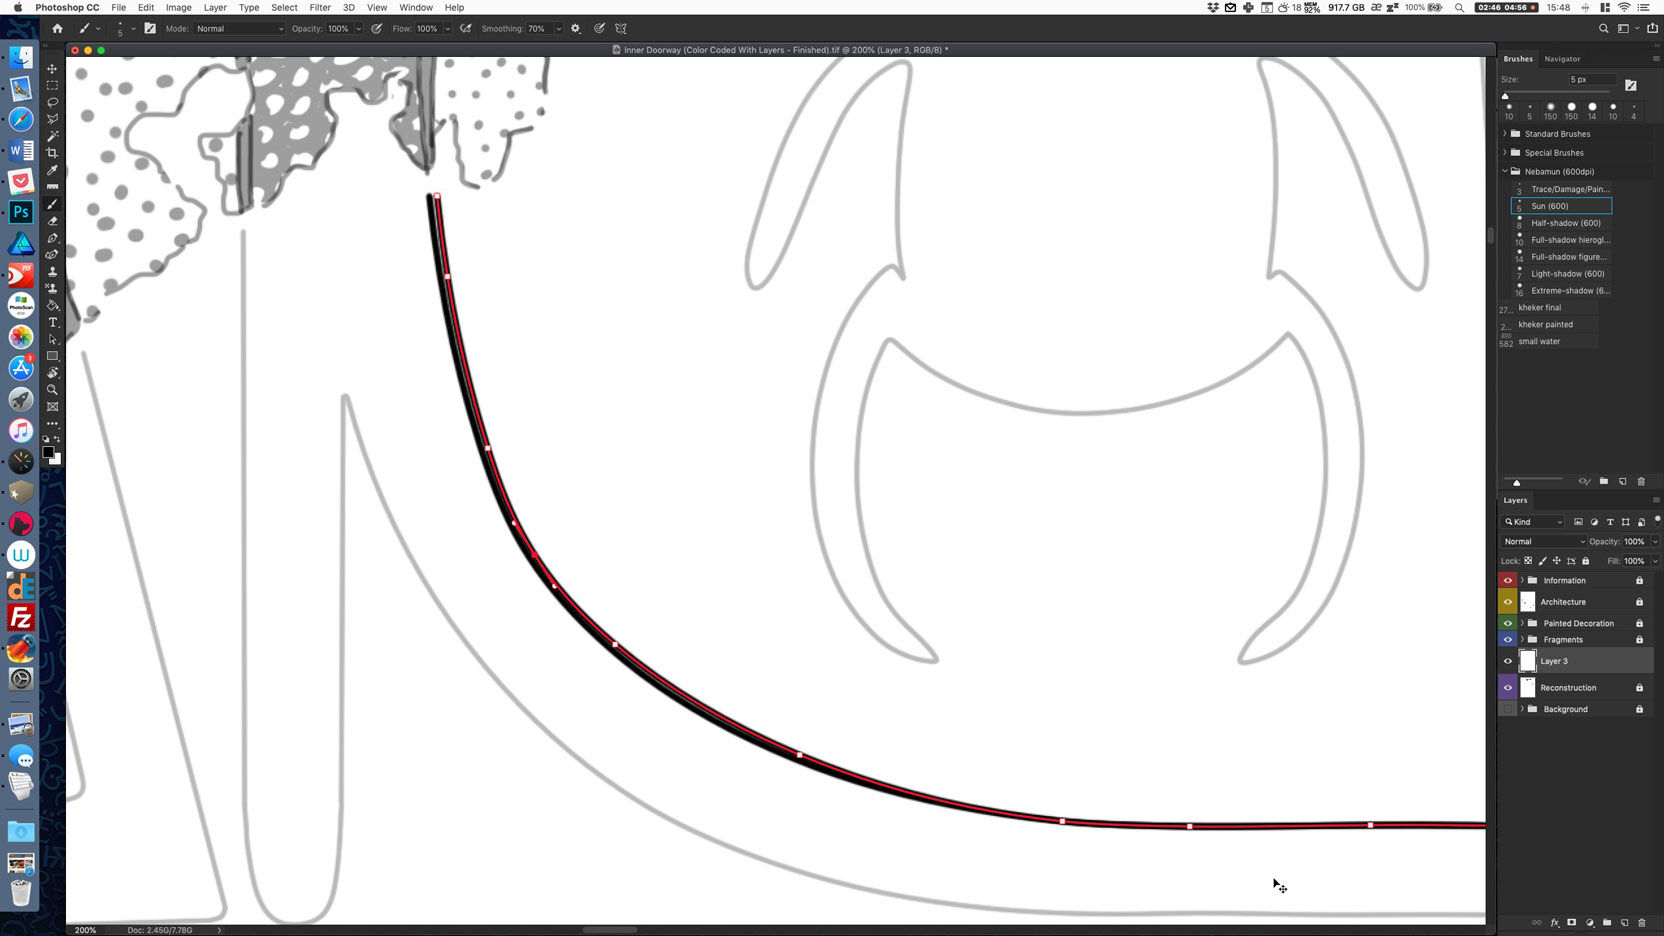 Drawing sun-shadow transitions using the Curvature Pen tool